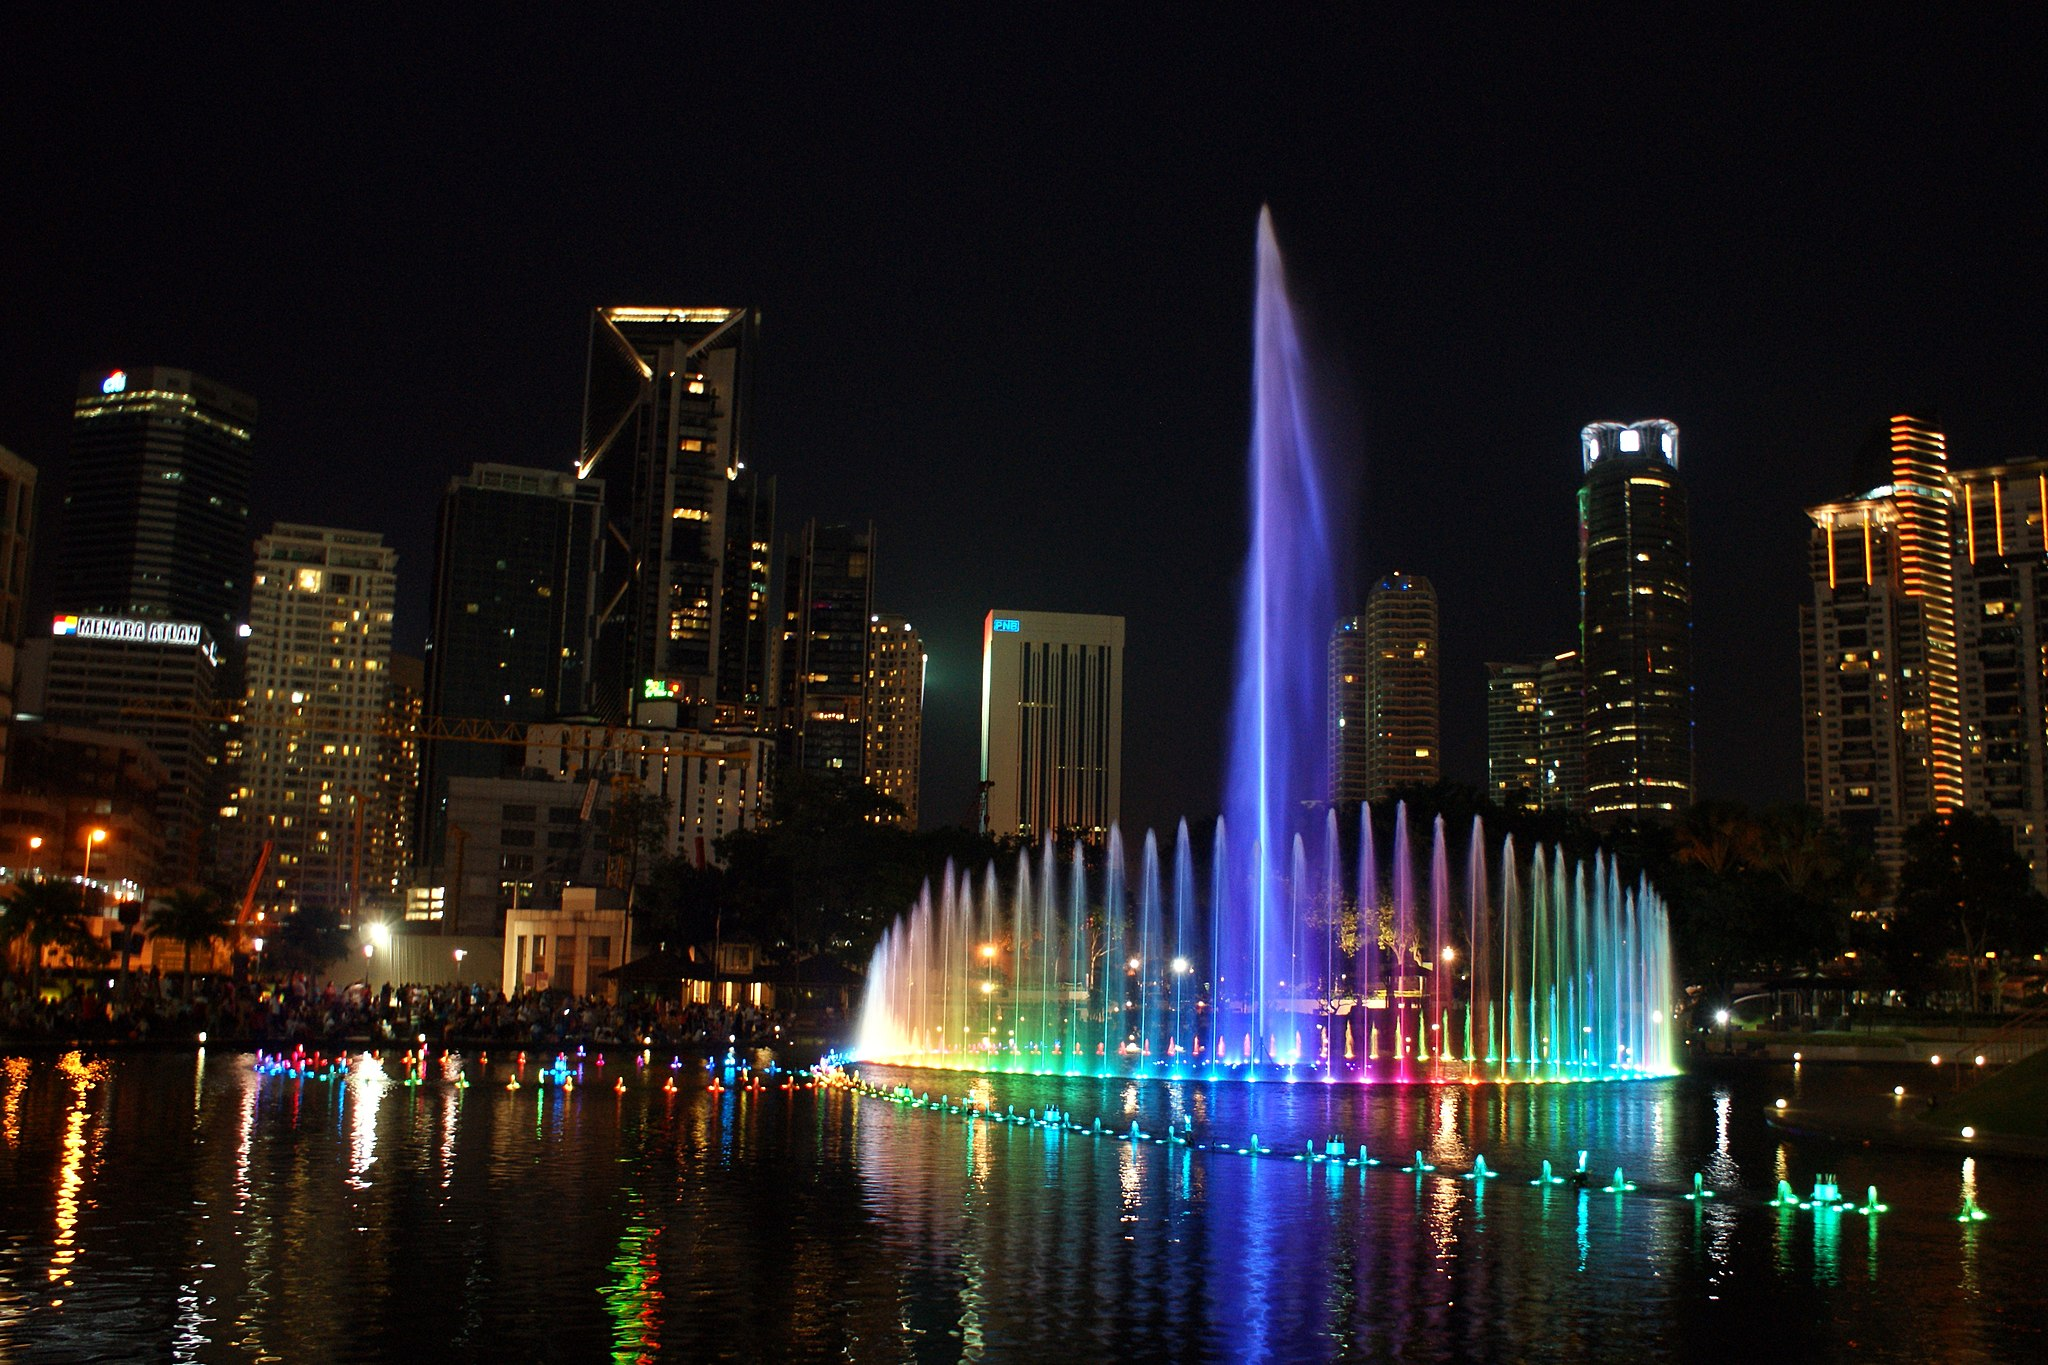 Light show at the Lake Symphony of KLCC Park during the night.